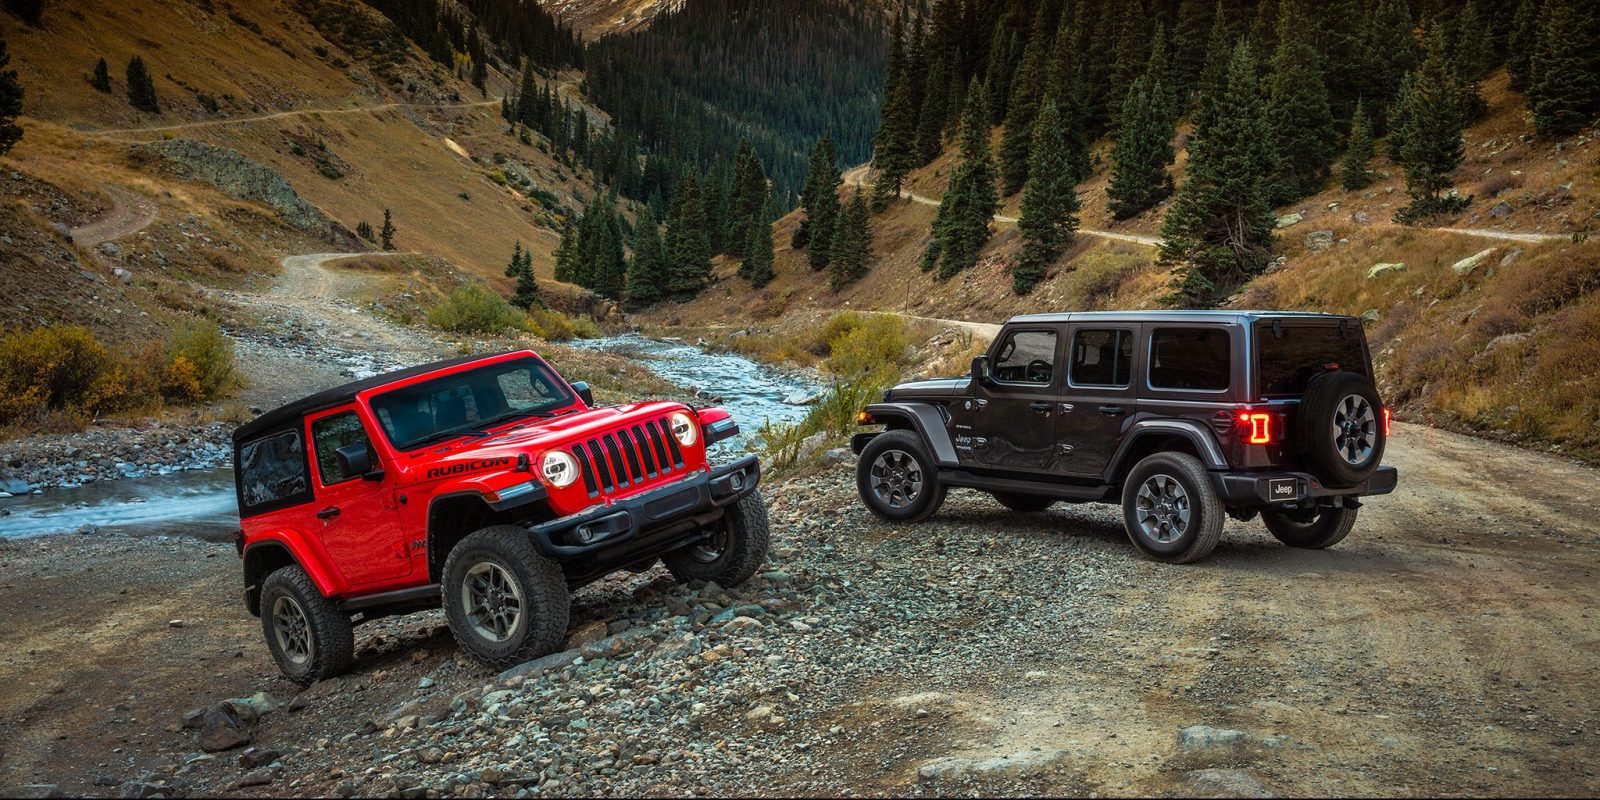 Jeep Will Make An Electric Wrangler In 2020 Electrek